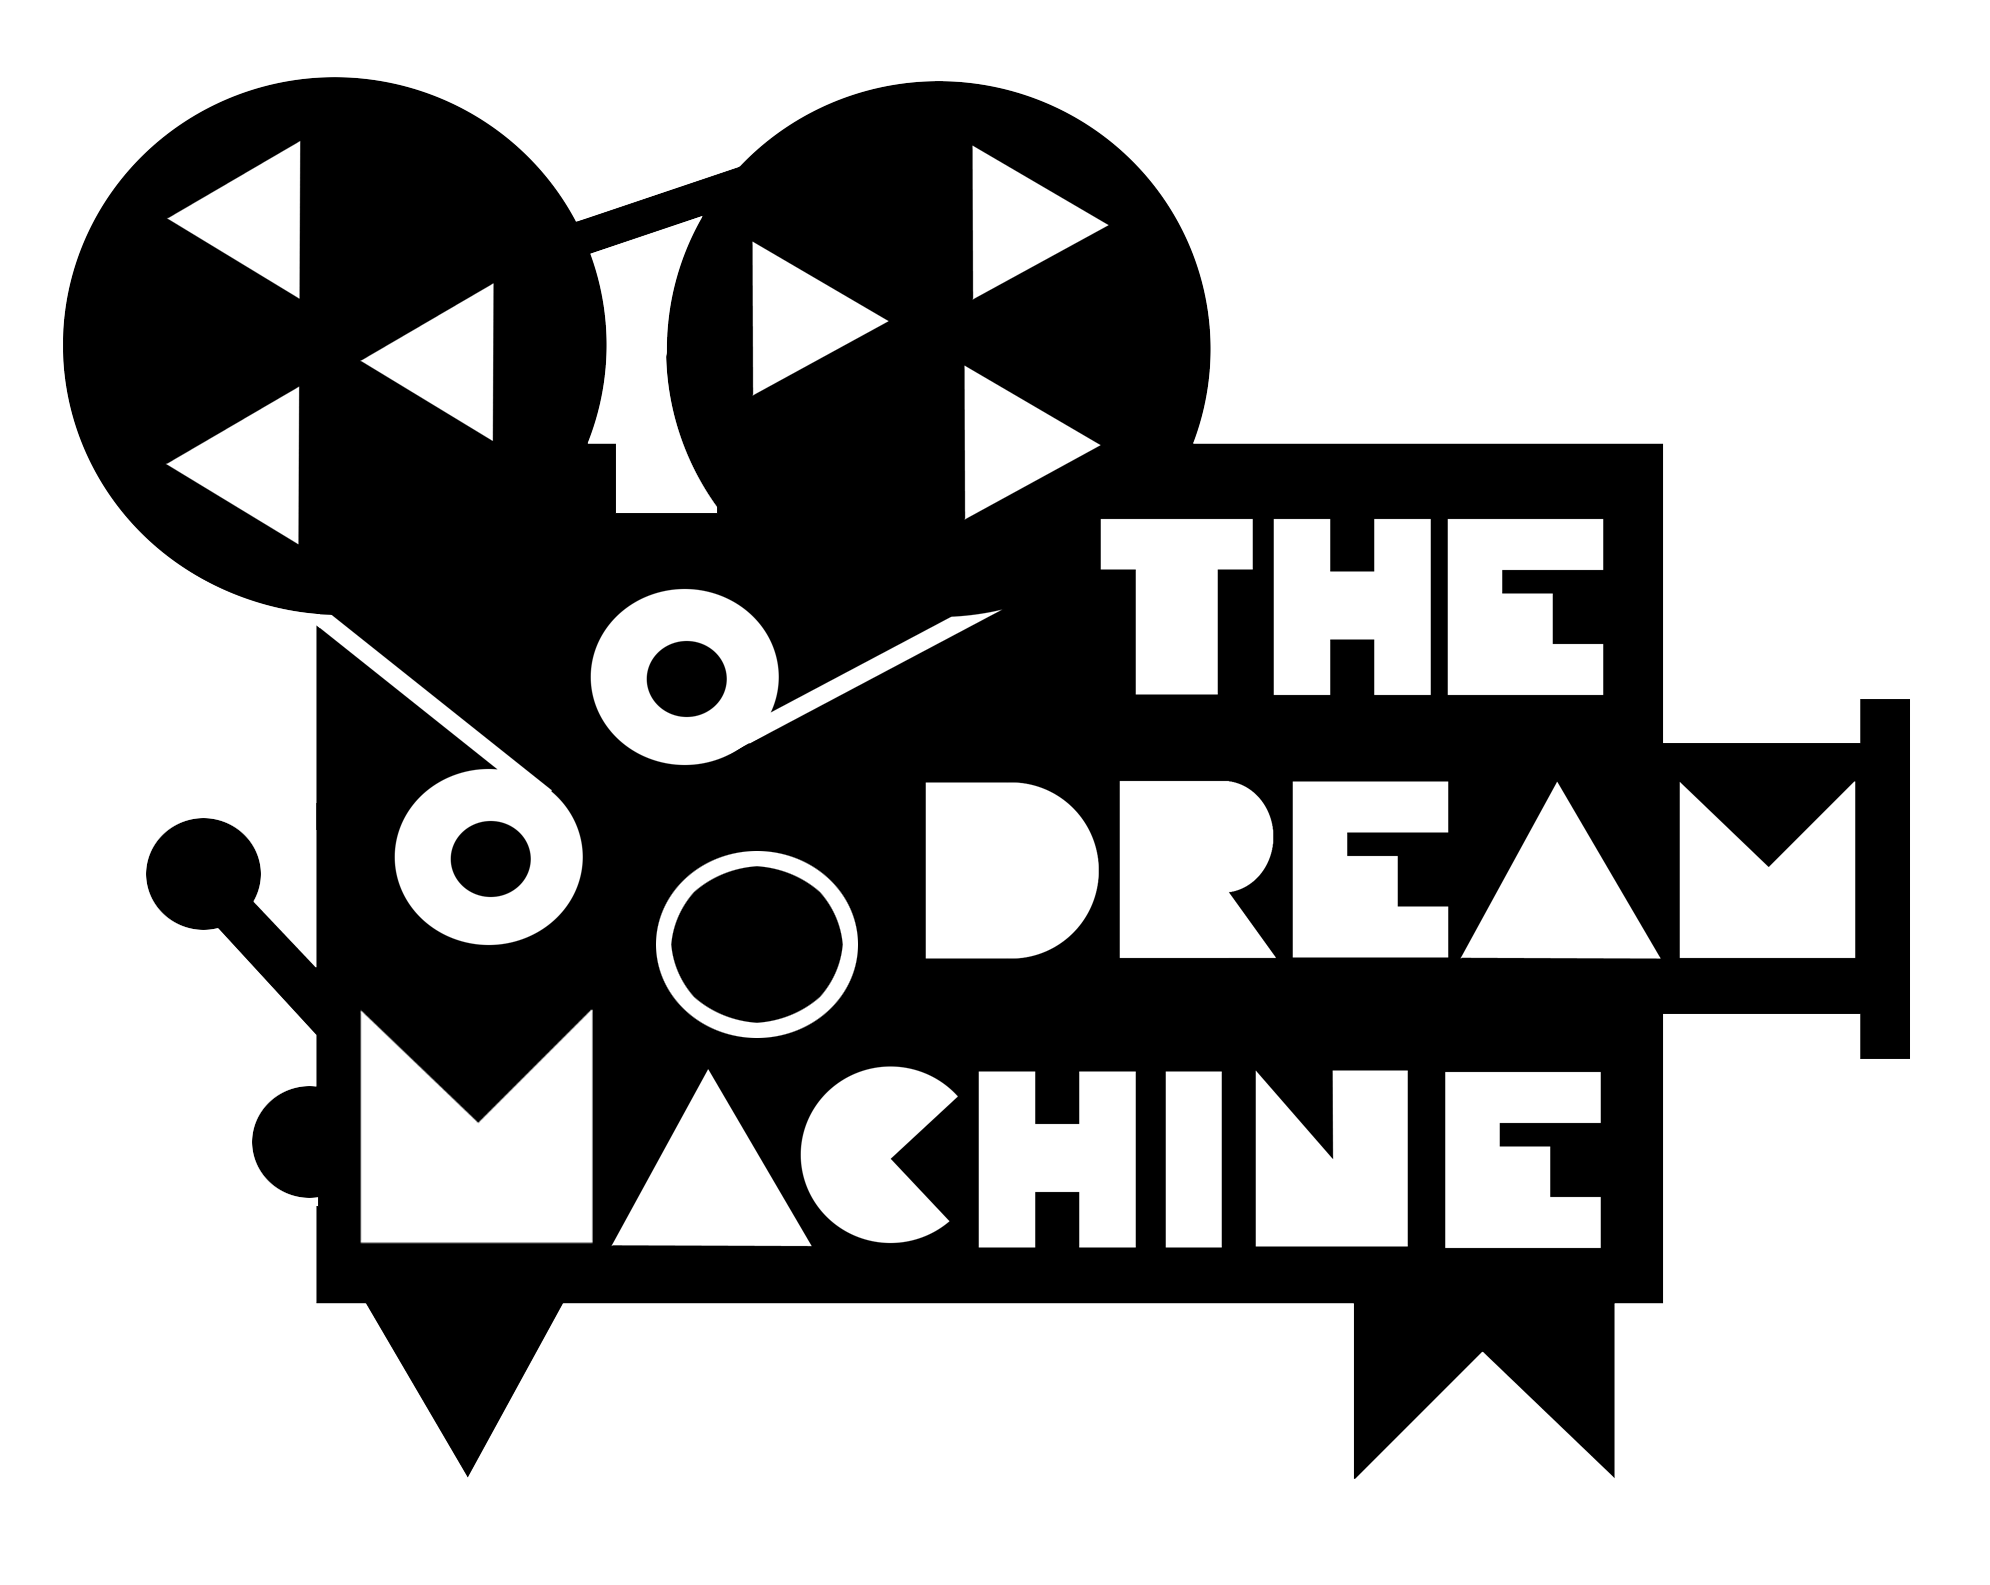 Downtime for The Dream Machine (Fixed)